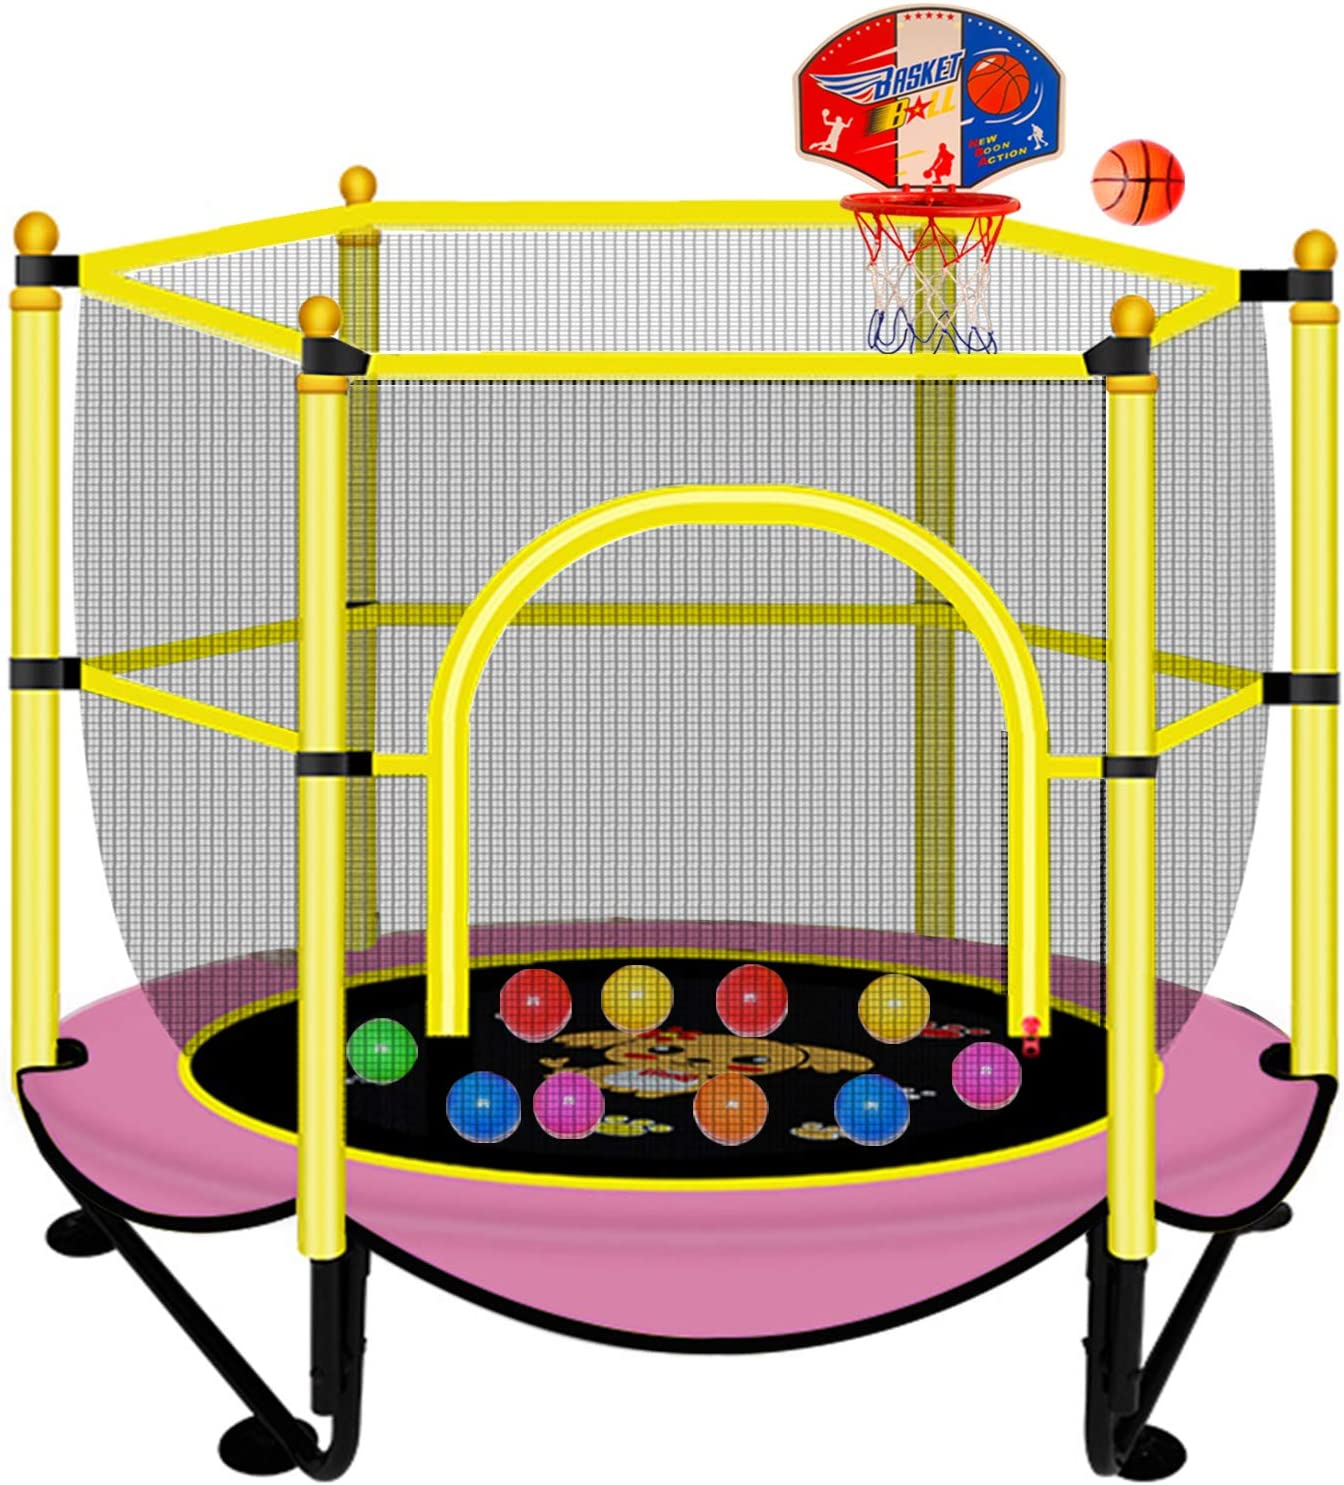 Trampoline for Kids 12FT Enclosure with Net Department store Outdoor Complete Free Shipping